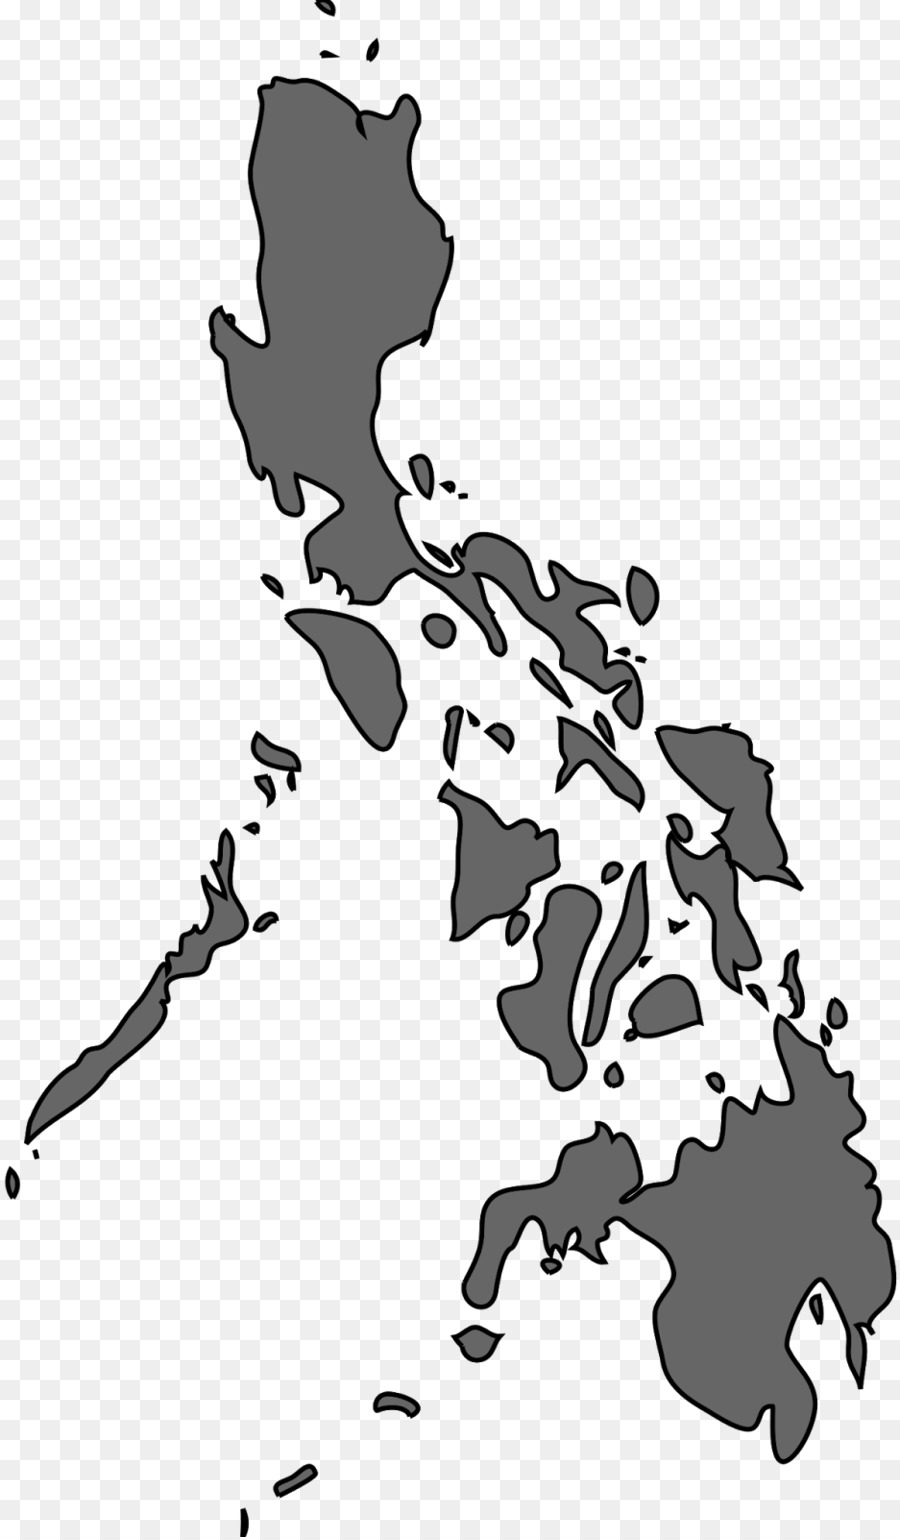 Map of the philippines clipart